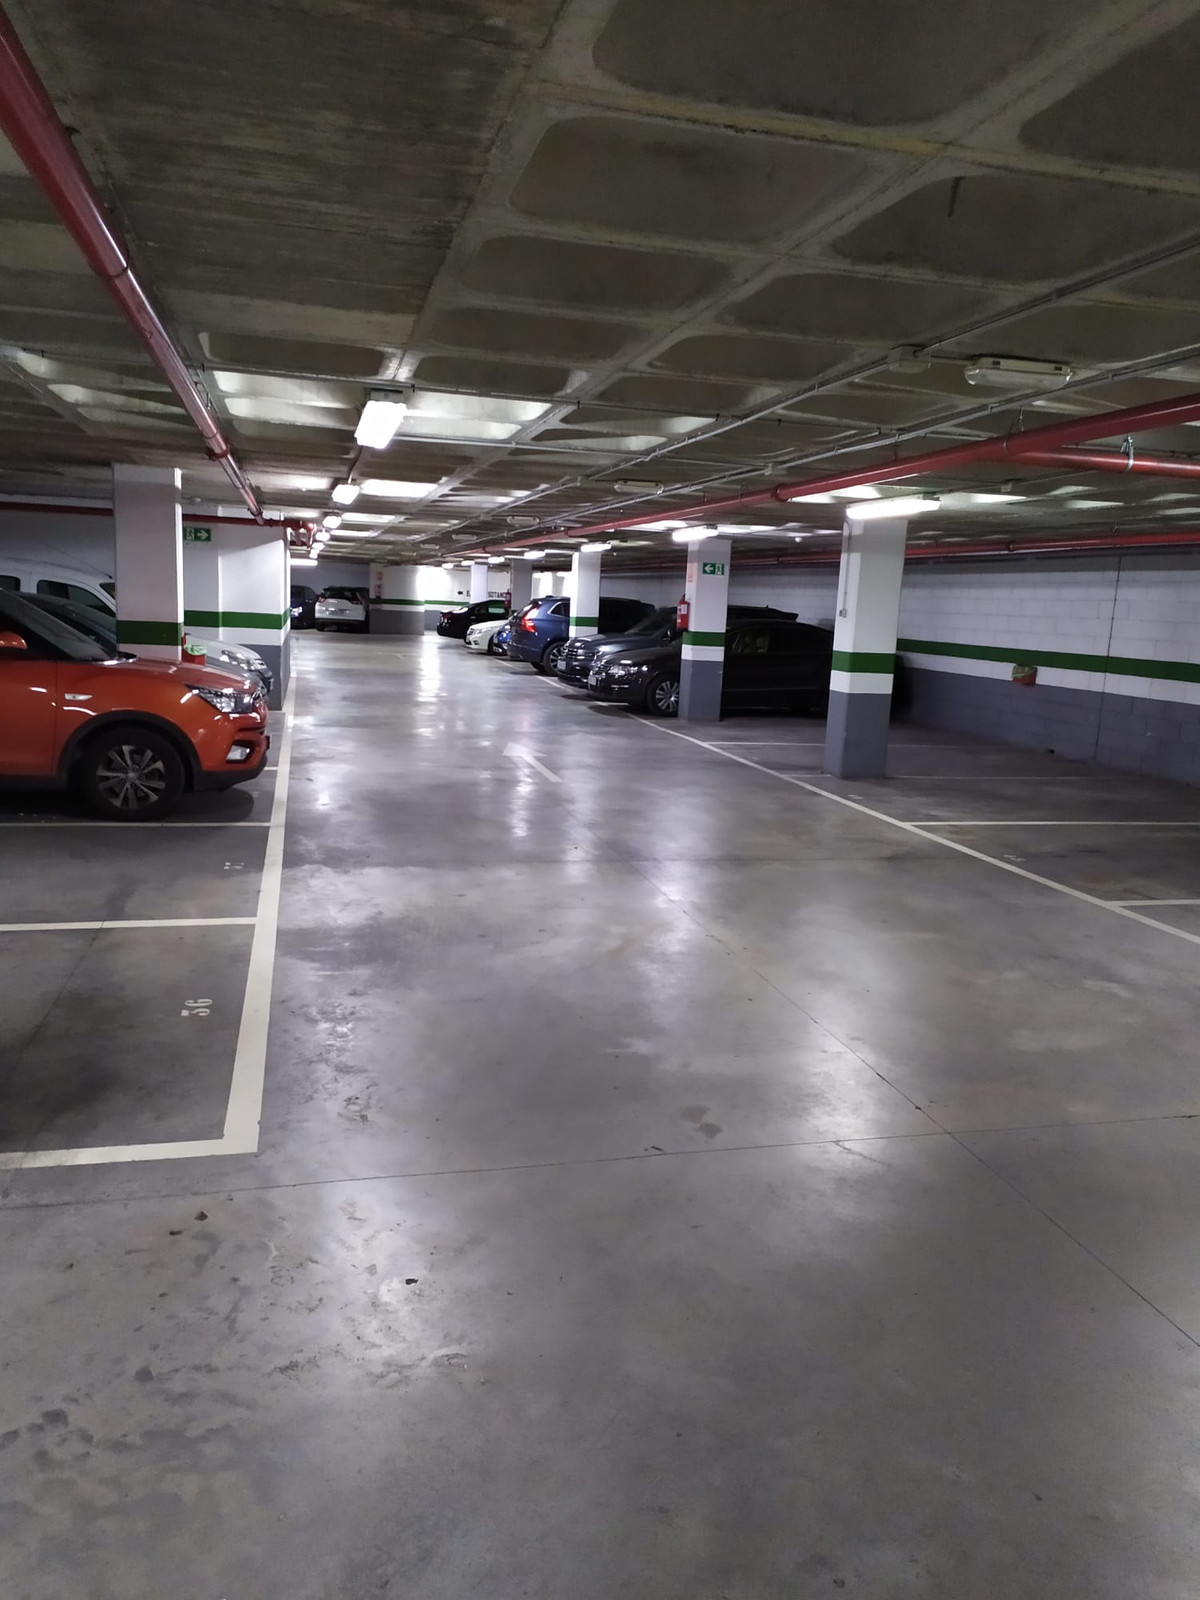 Garage space for sale in Plaza Picasso, large garages with easy maneuverability next to the beach. I,Spain